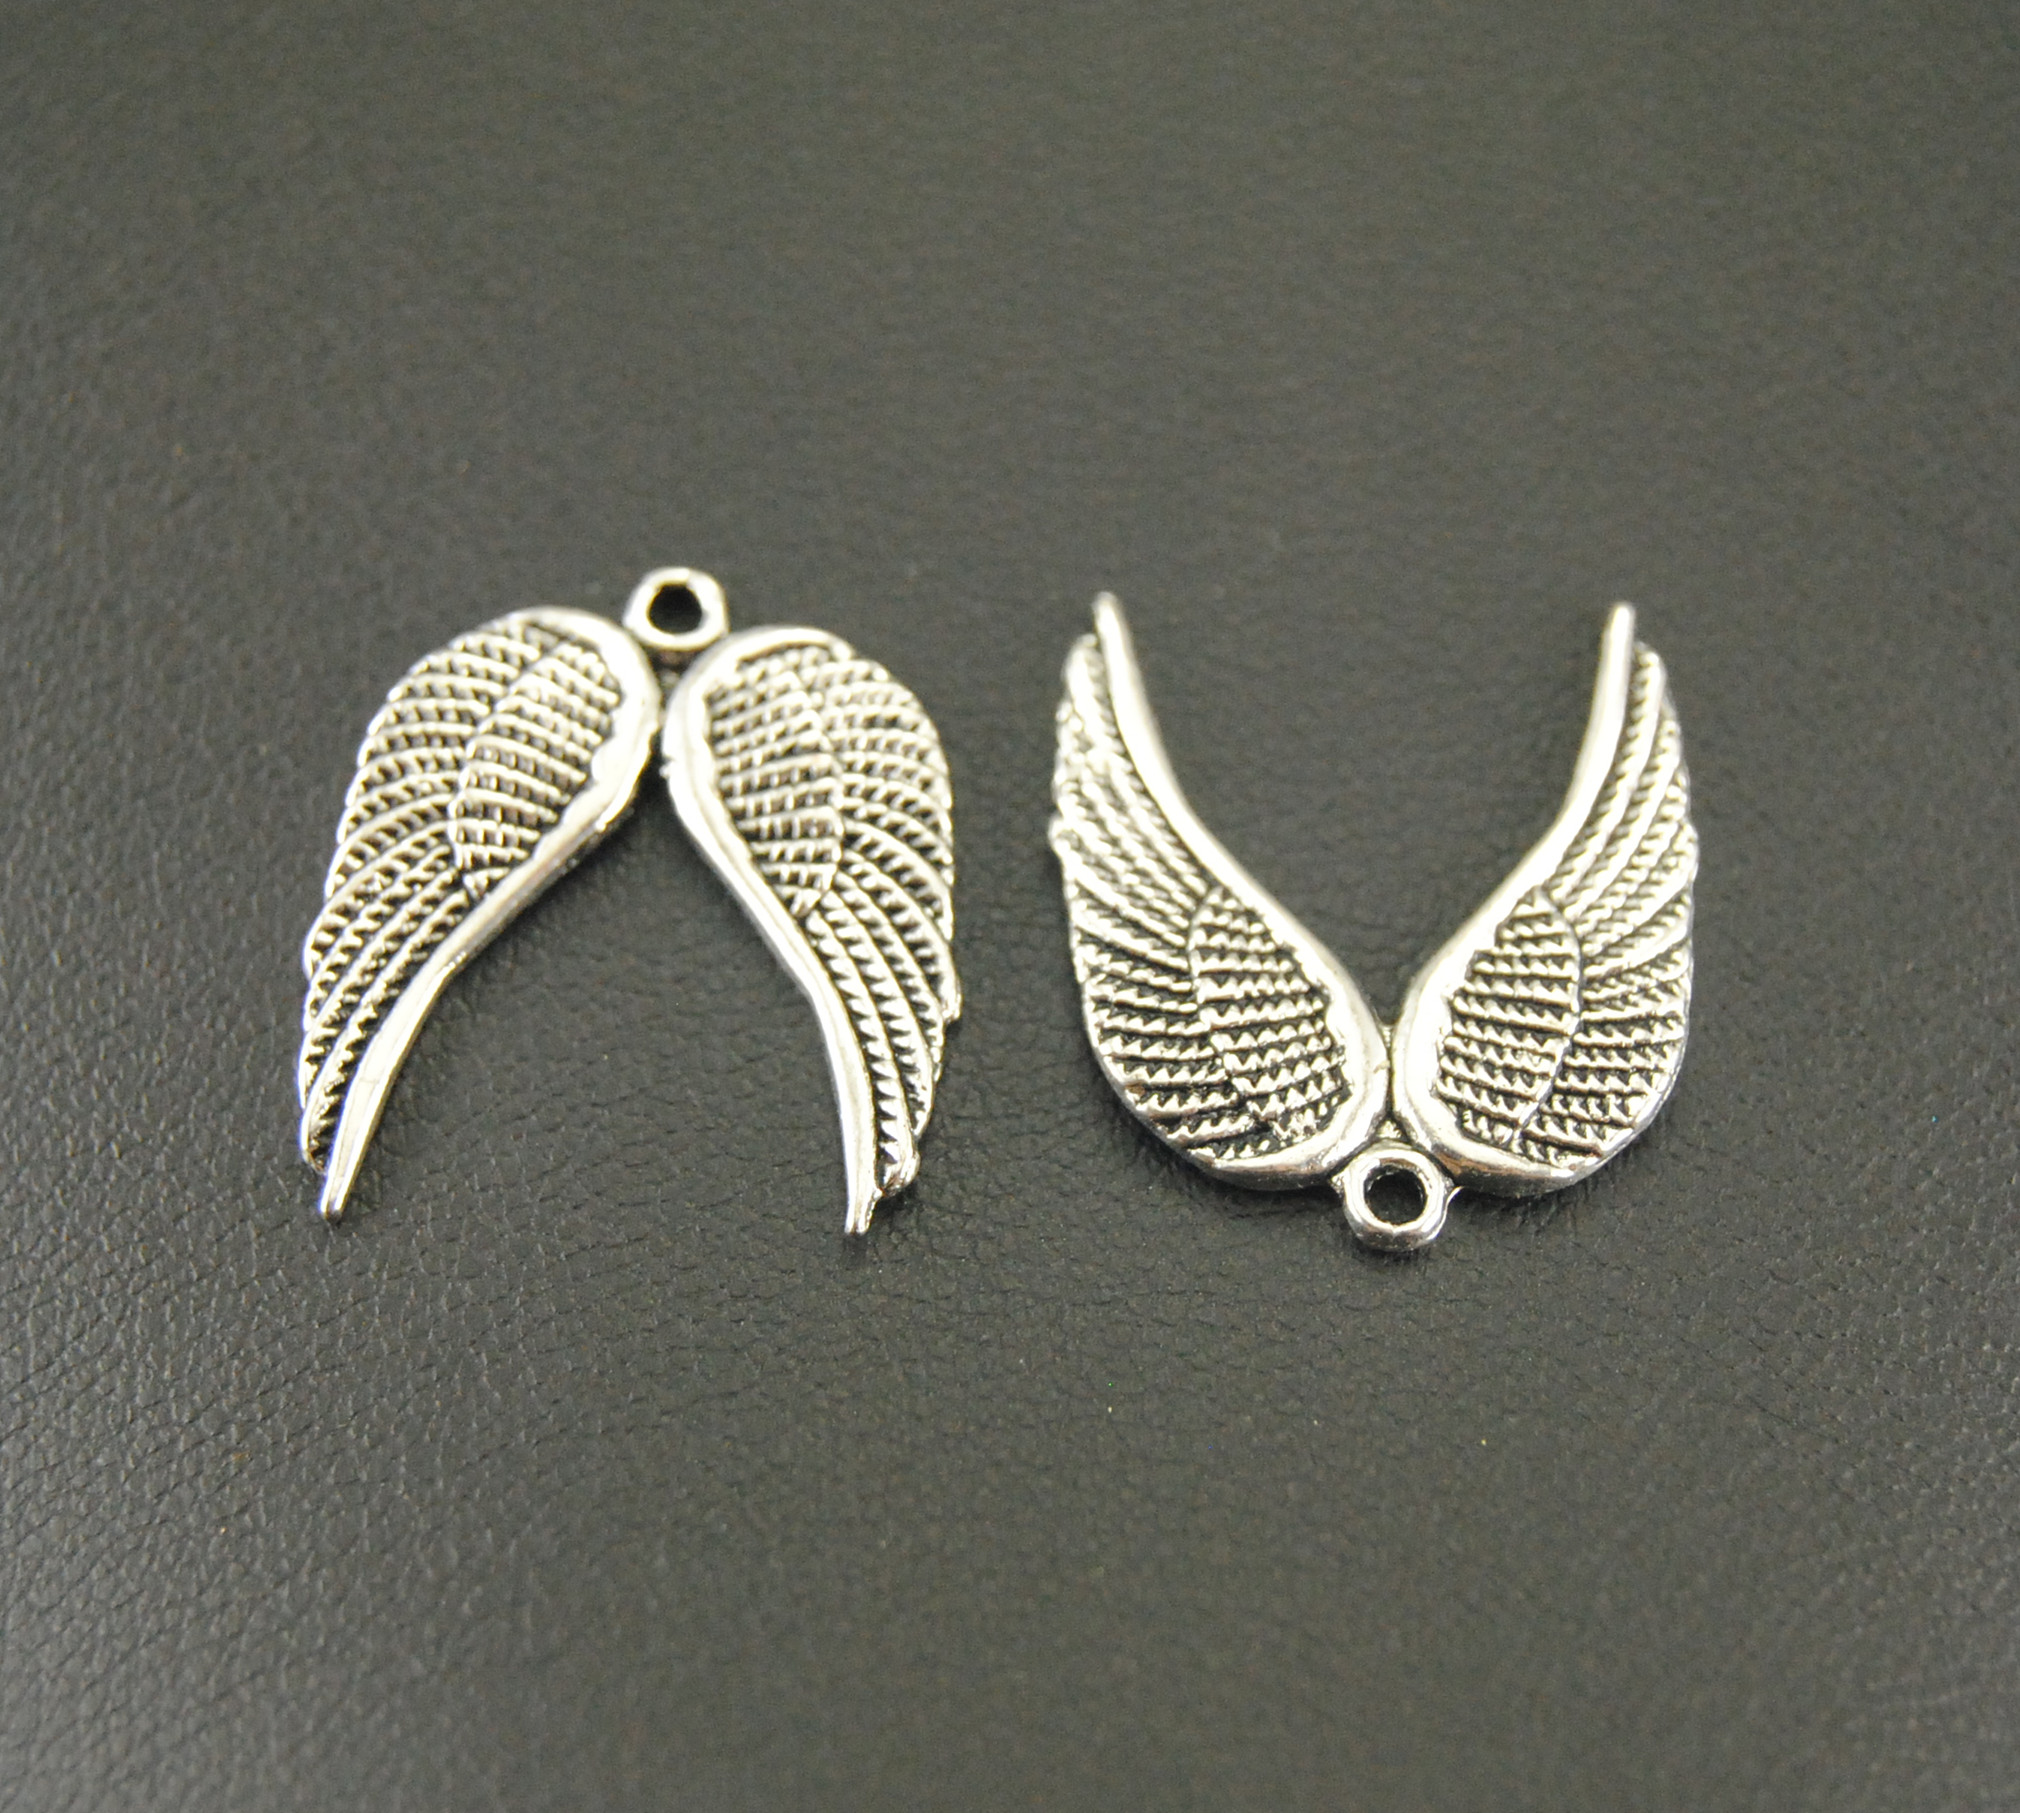 Tibetan Alloy Small Angel Wings Connectors 2 sided Antique Silver